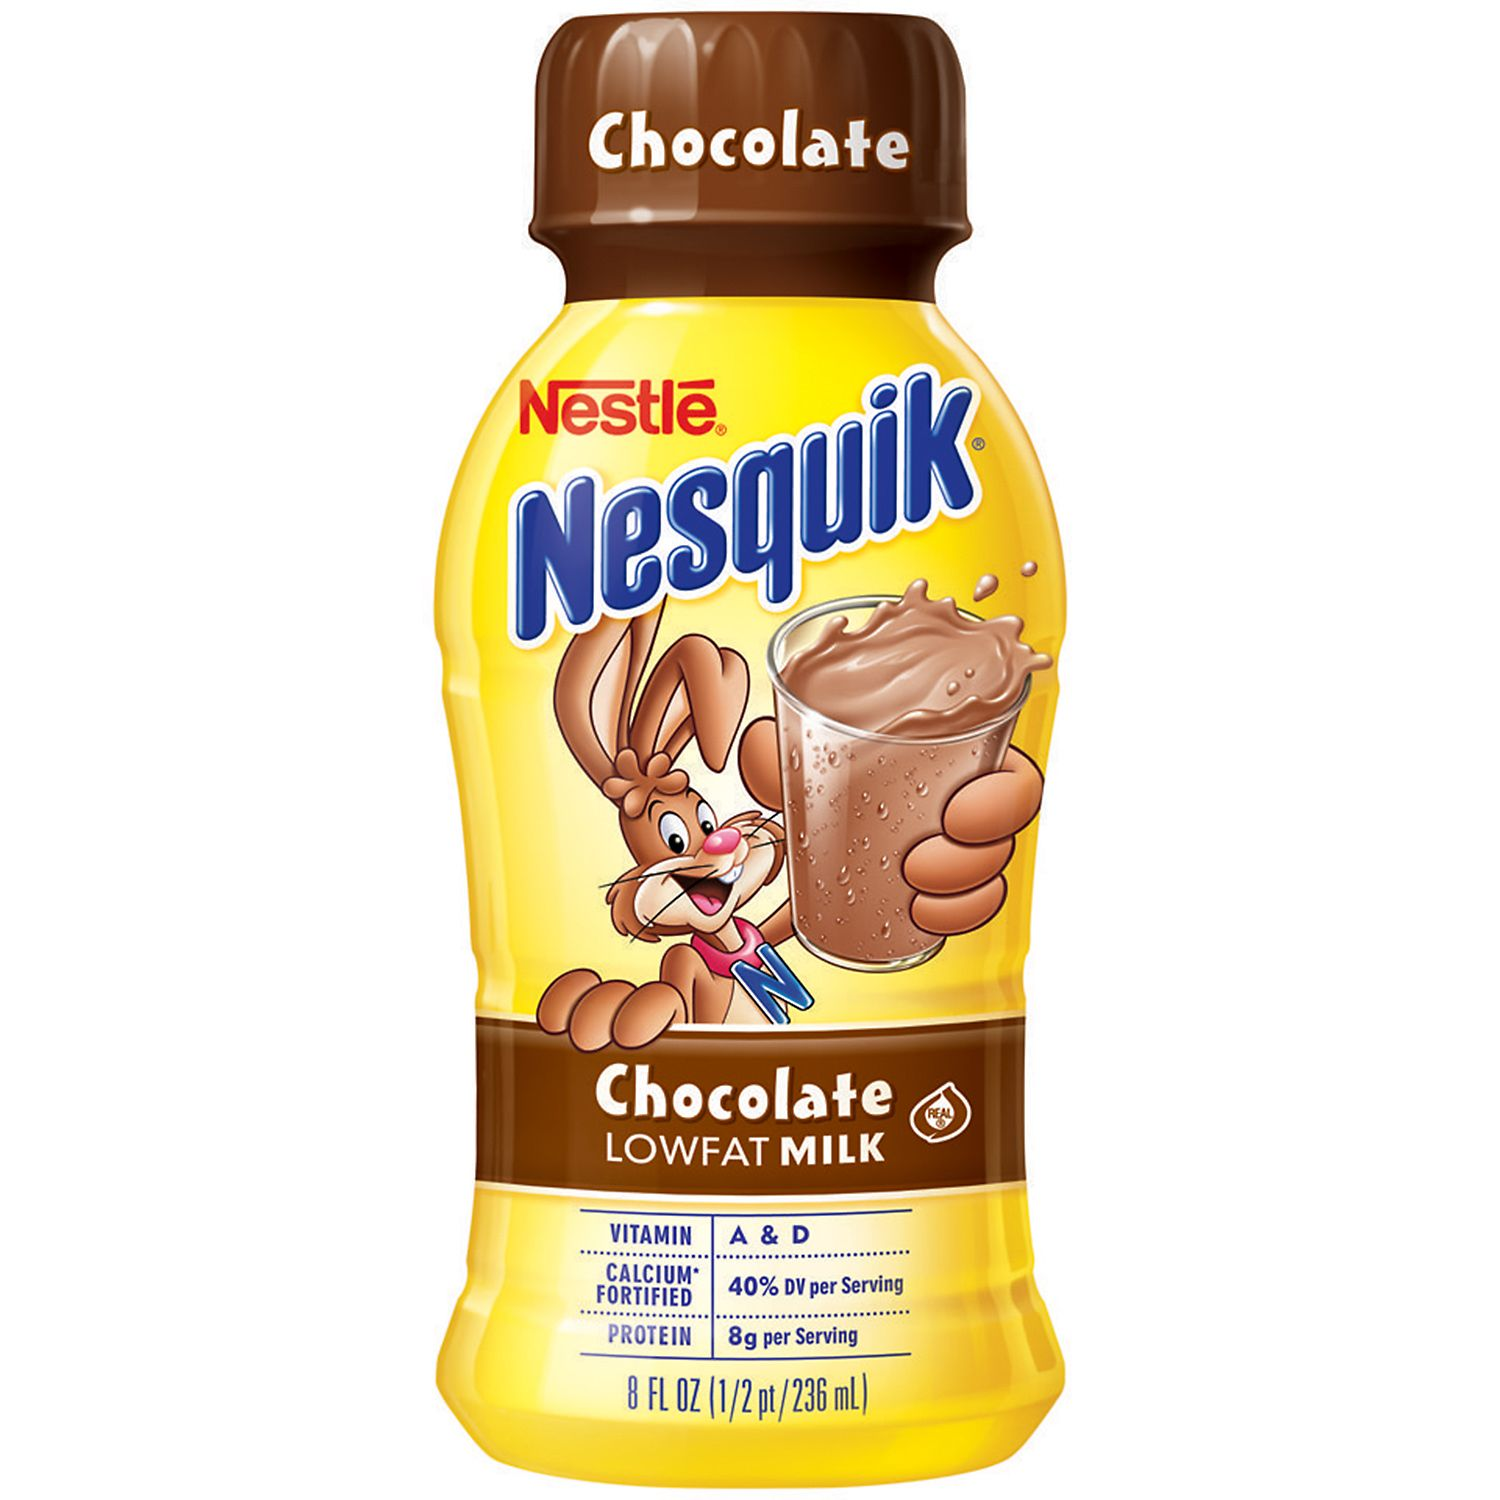 Nestle Nesquik Chocolate Lowfat Milk - 15/8 oz.